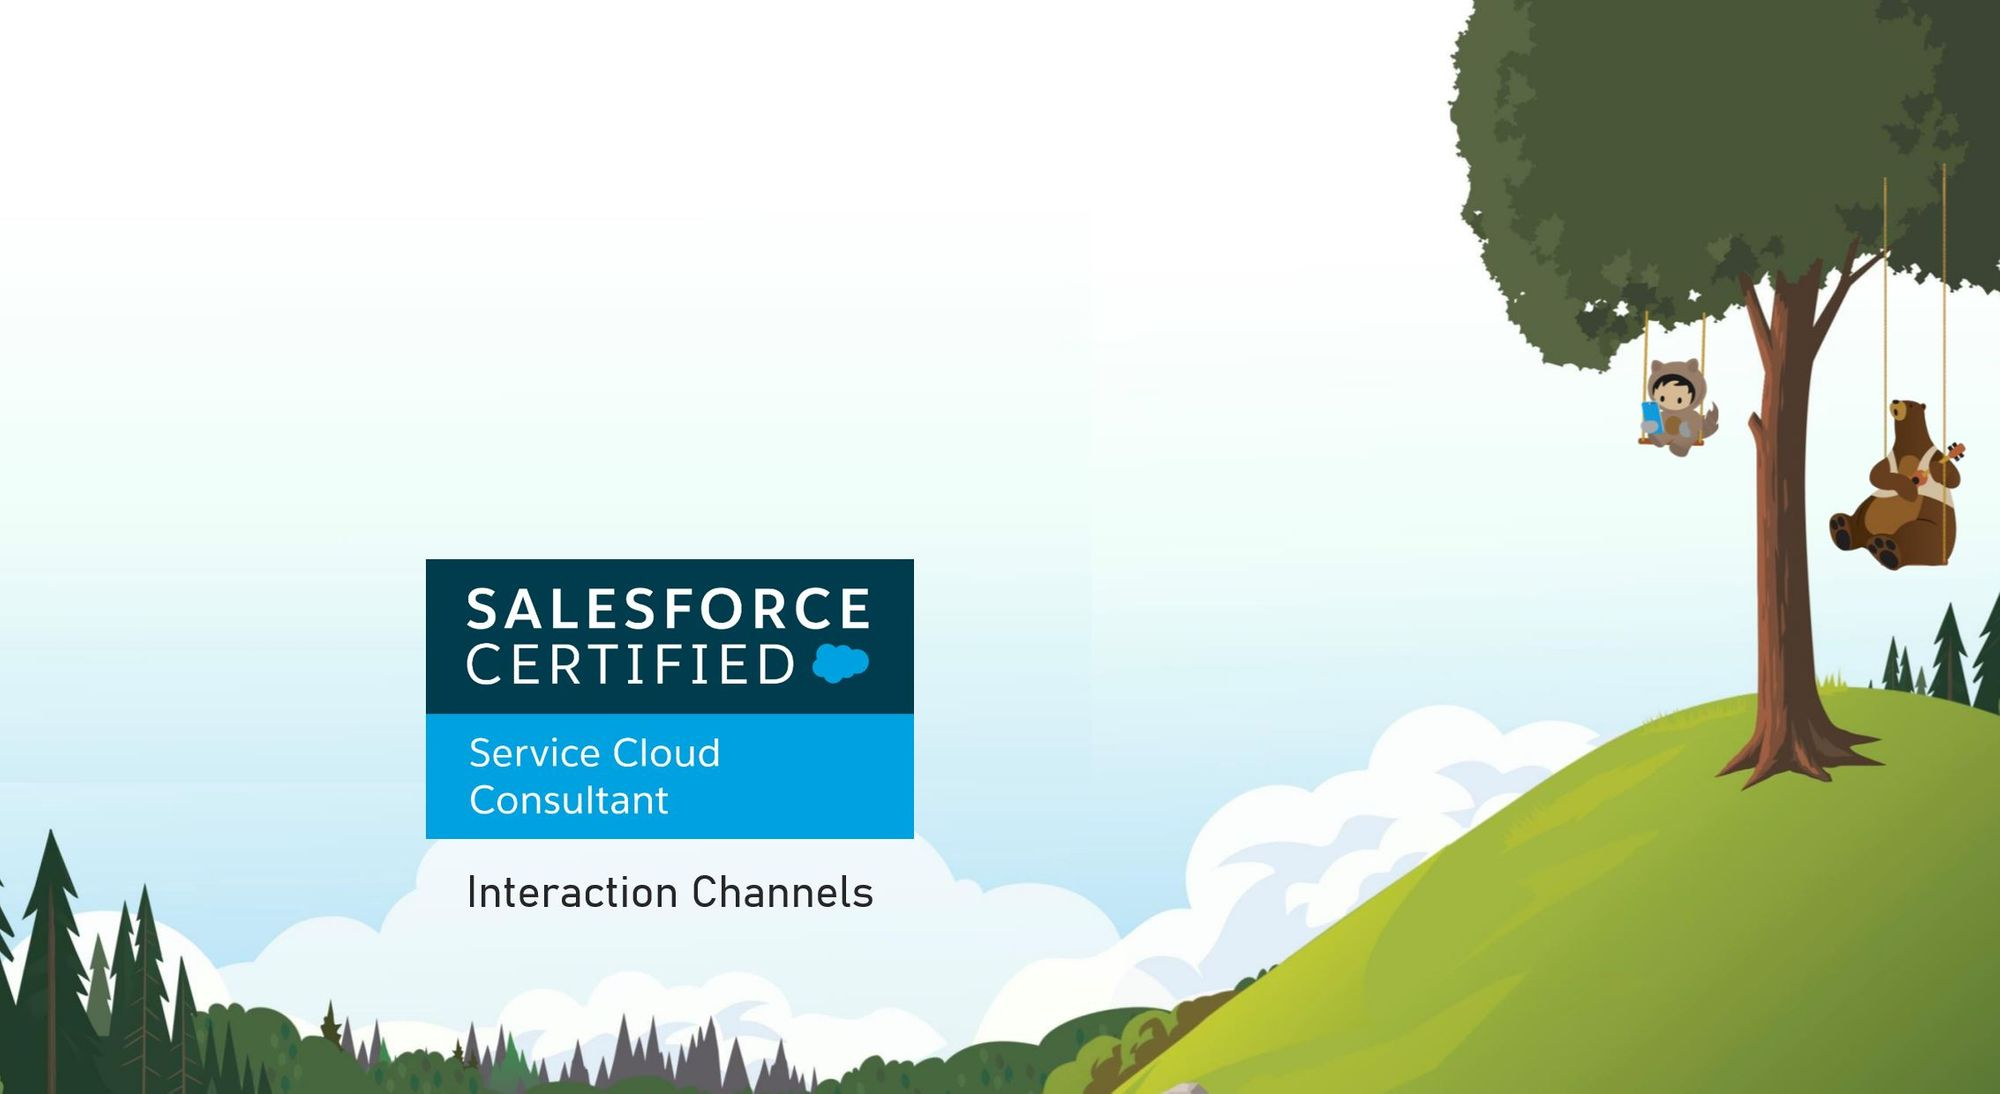 Salesforce Service Cloud Consultant Exam Preparation: Interaction Channels